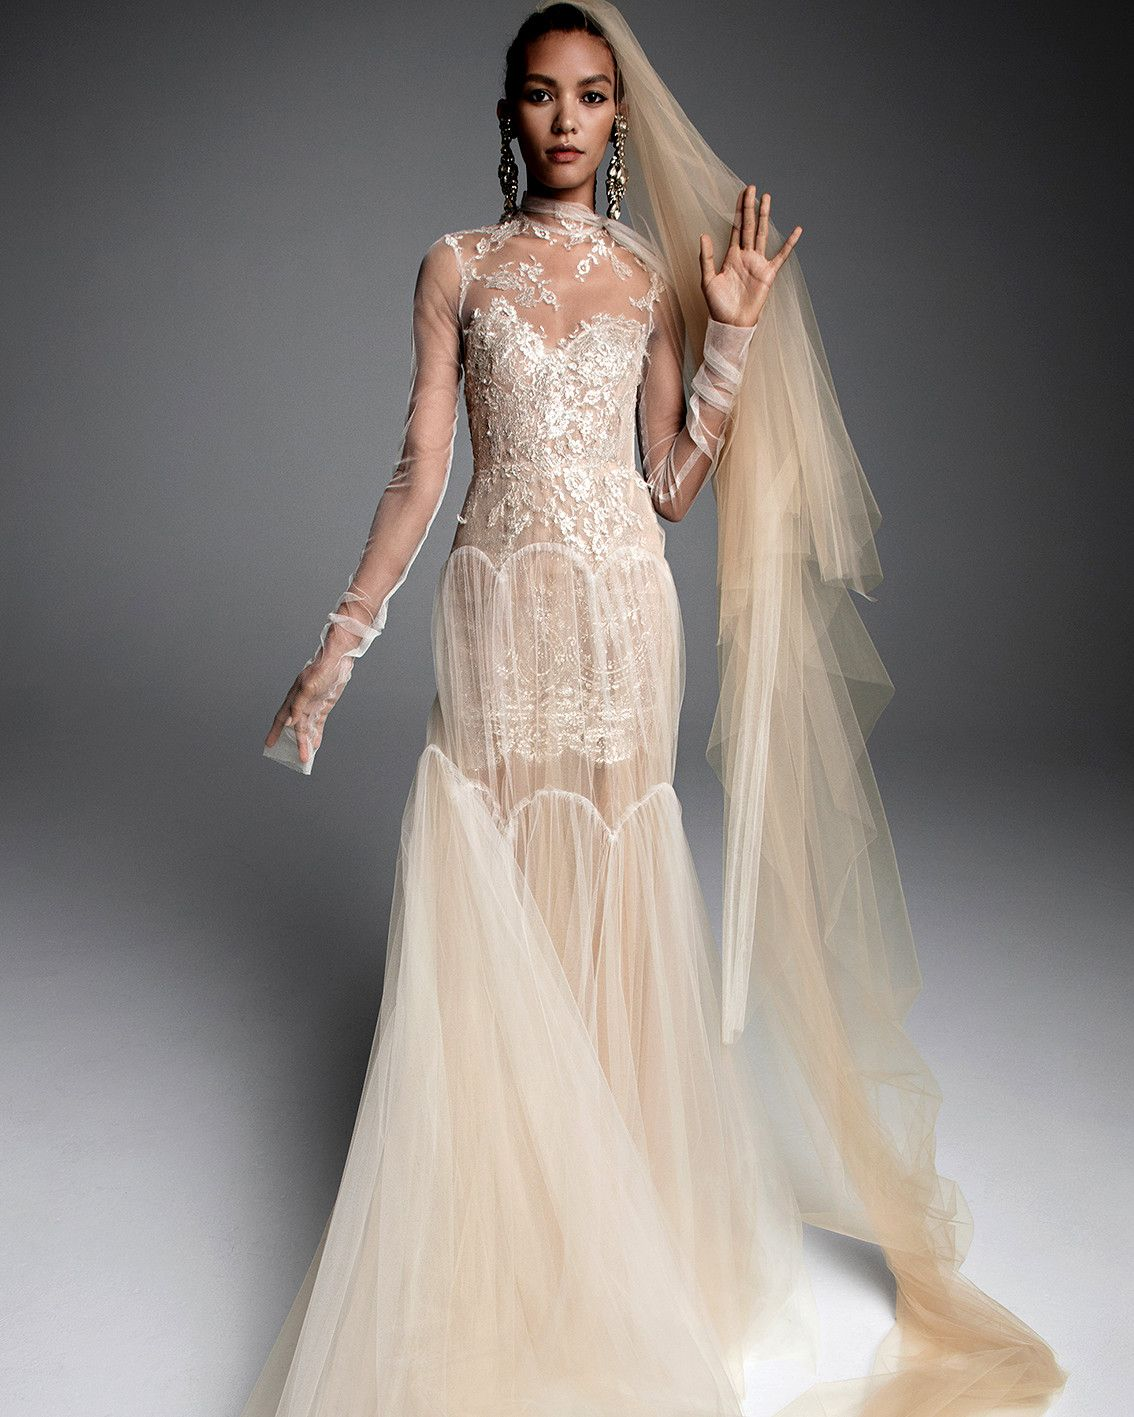 Vintage Wedding Dresses Nyc: Vera Wang Fall 2019 Wedding Dress Collection